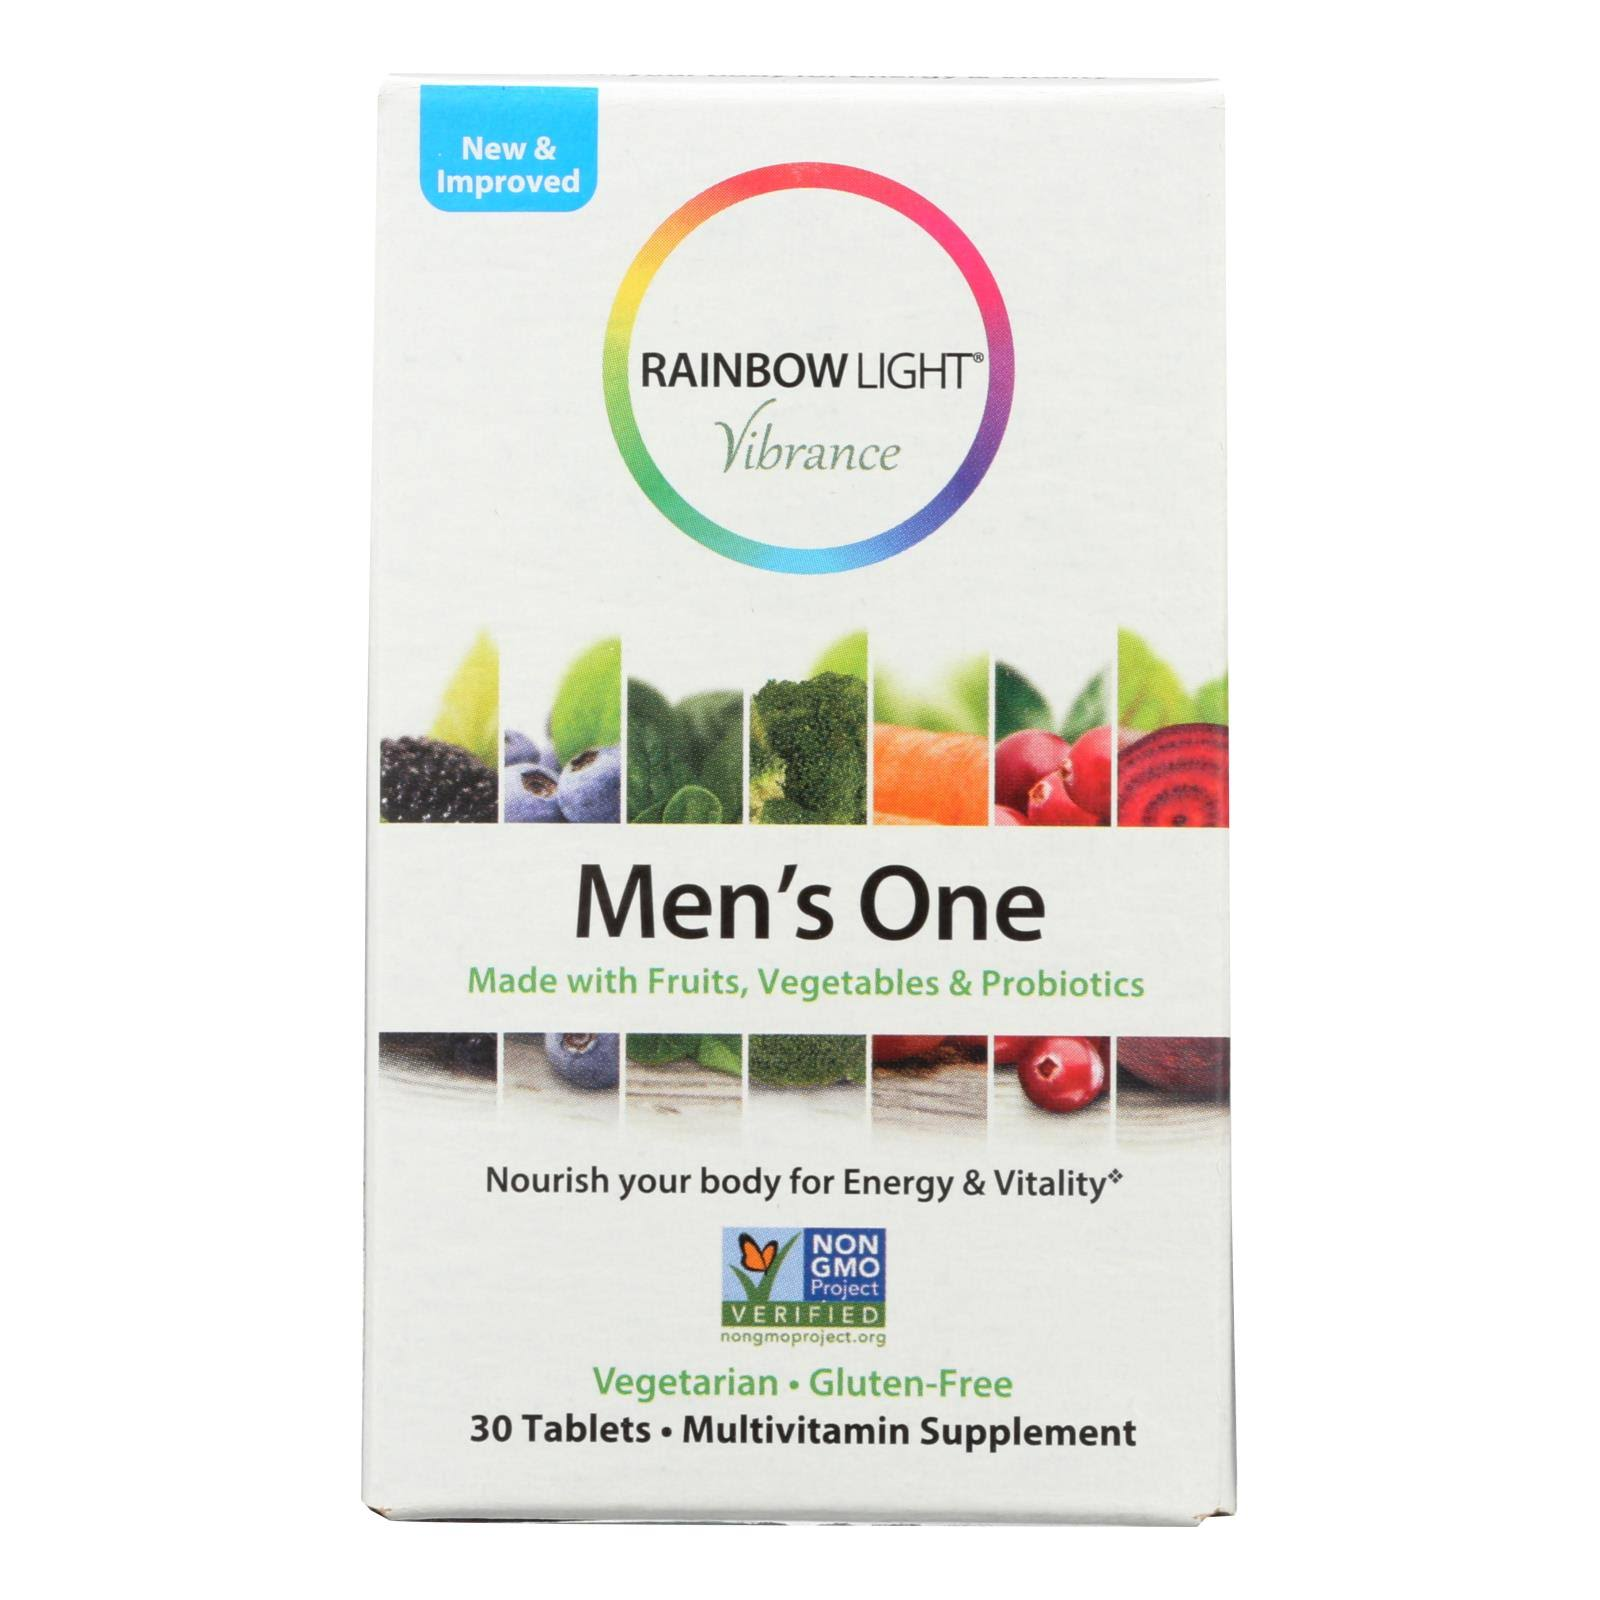 Rainbow Light Vibrance Men's One, Tablets - 30 tablets